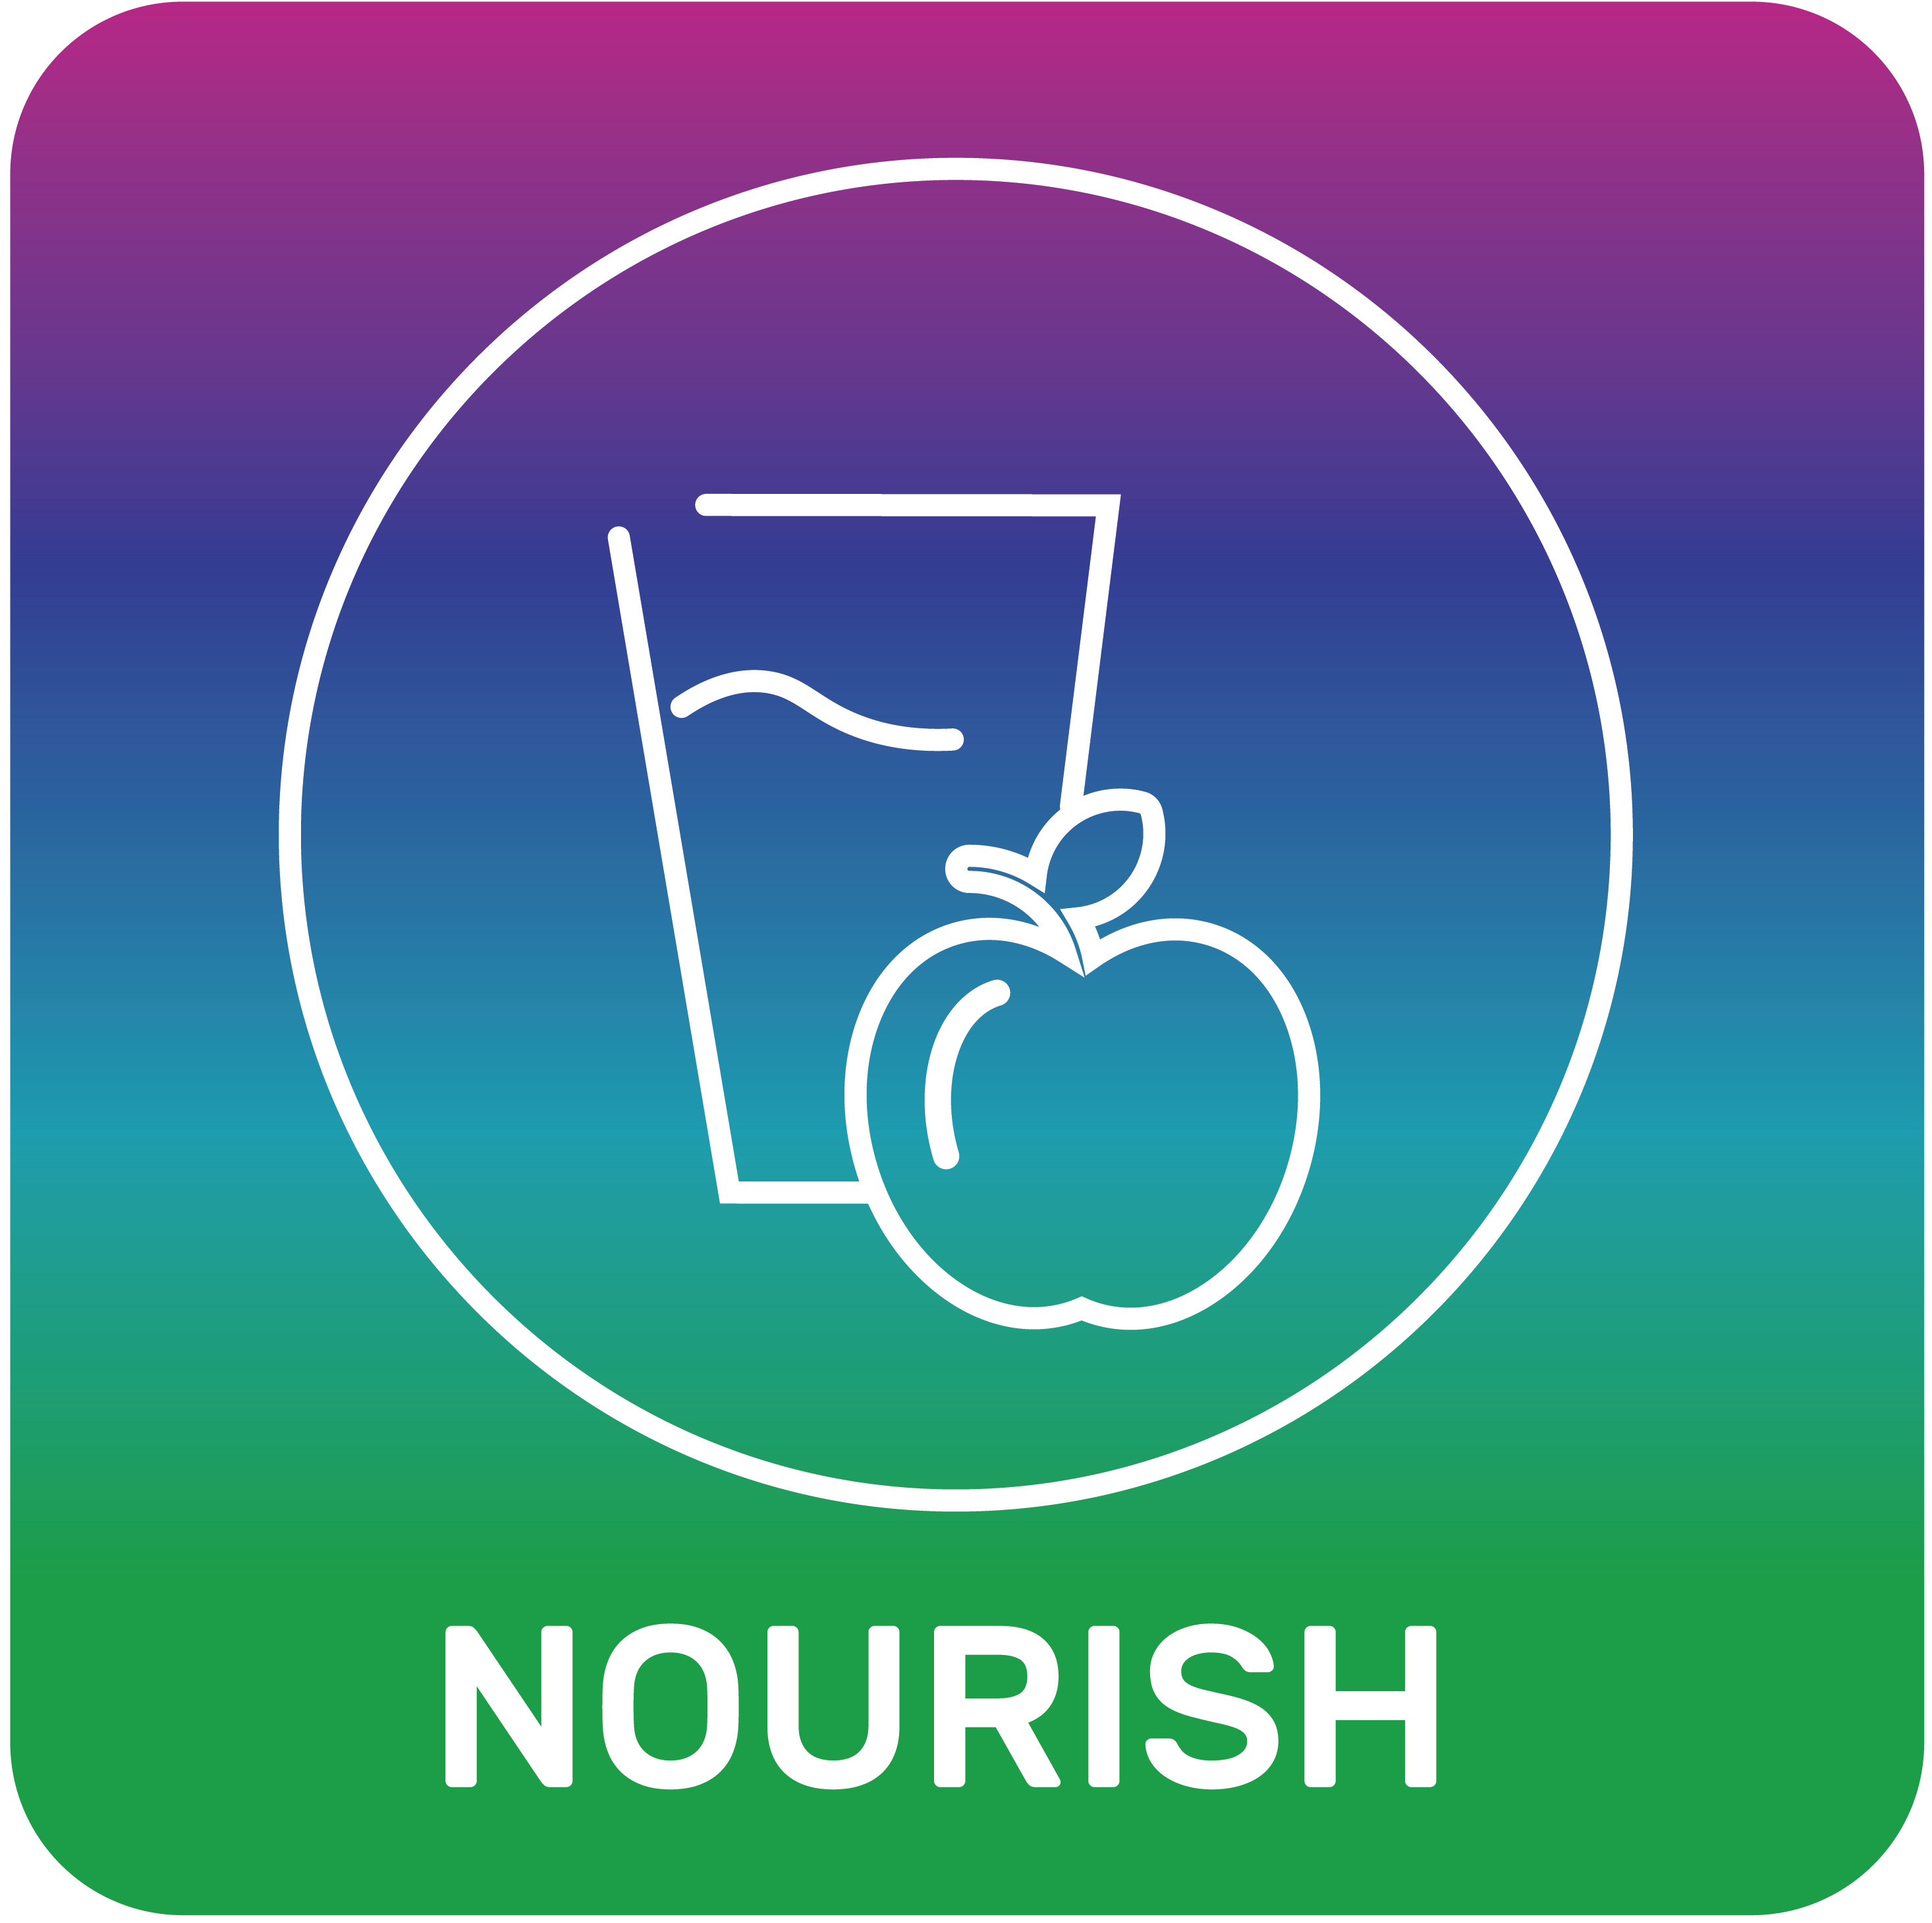 Nourish DNA app by Toolbox Genomics in Sequencing.com's Genome App Store provides DNA personalized nutrition guidance and works with DNA data from AncestryDNA, 23andMe, FTDNA, My Heritage, Genes for Good (GFG), Helix, All Of Us, Dante Labs, Illumina, LivingDNA and genome sequencing.